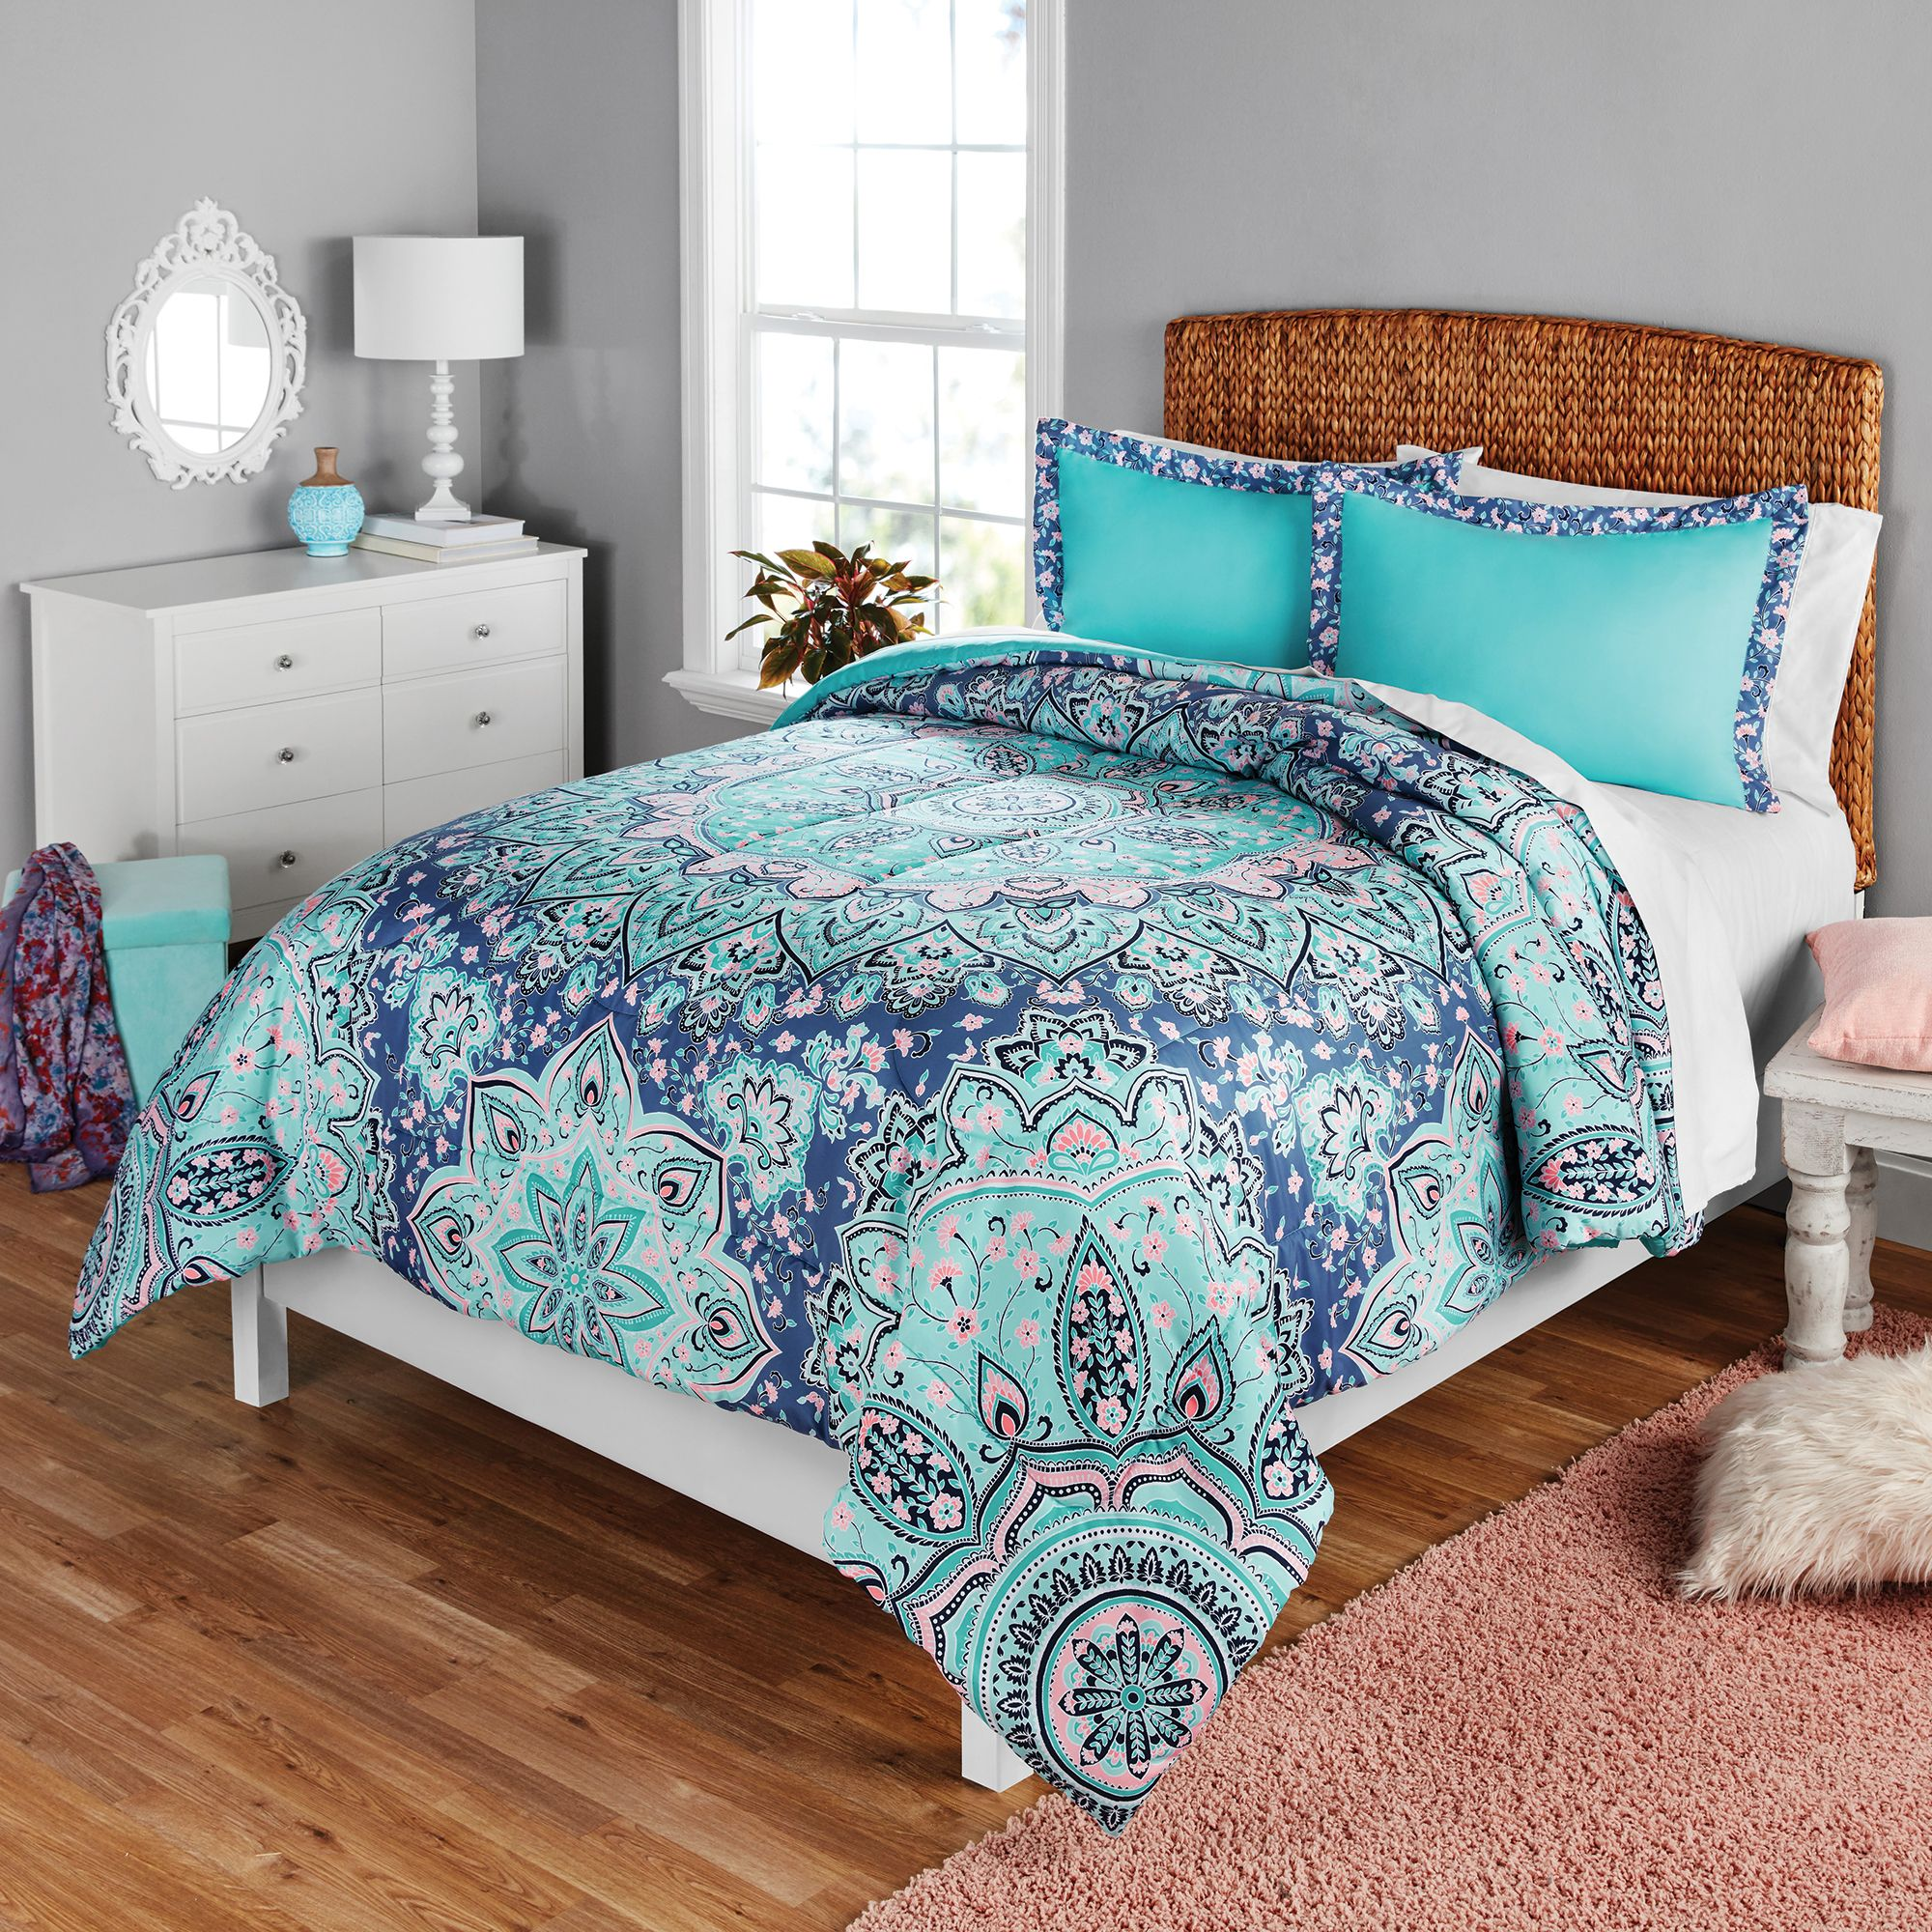 Your Zone Medallion Print Comforter and Sham Set